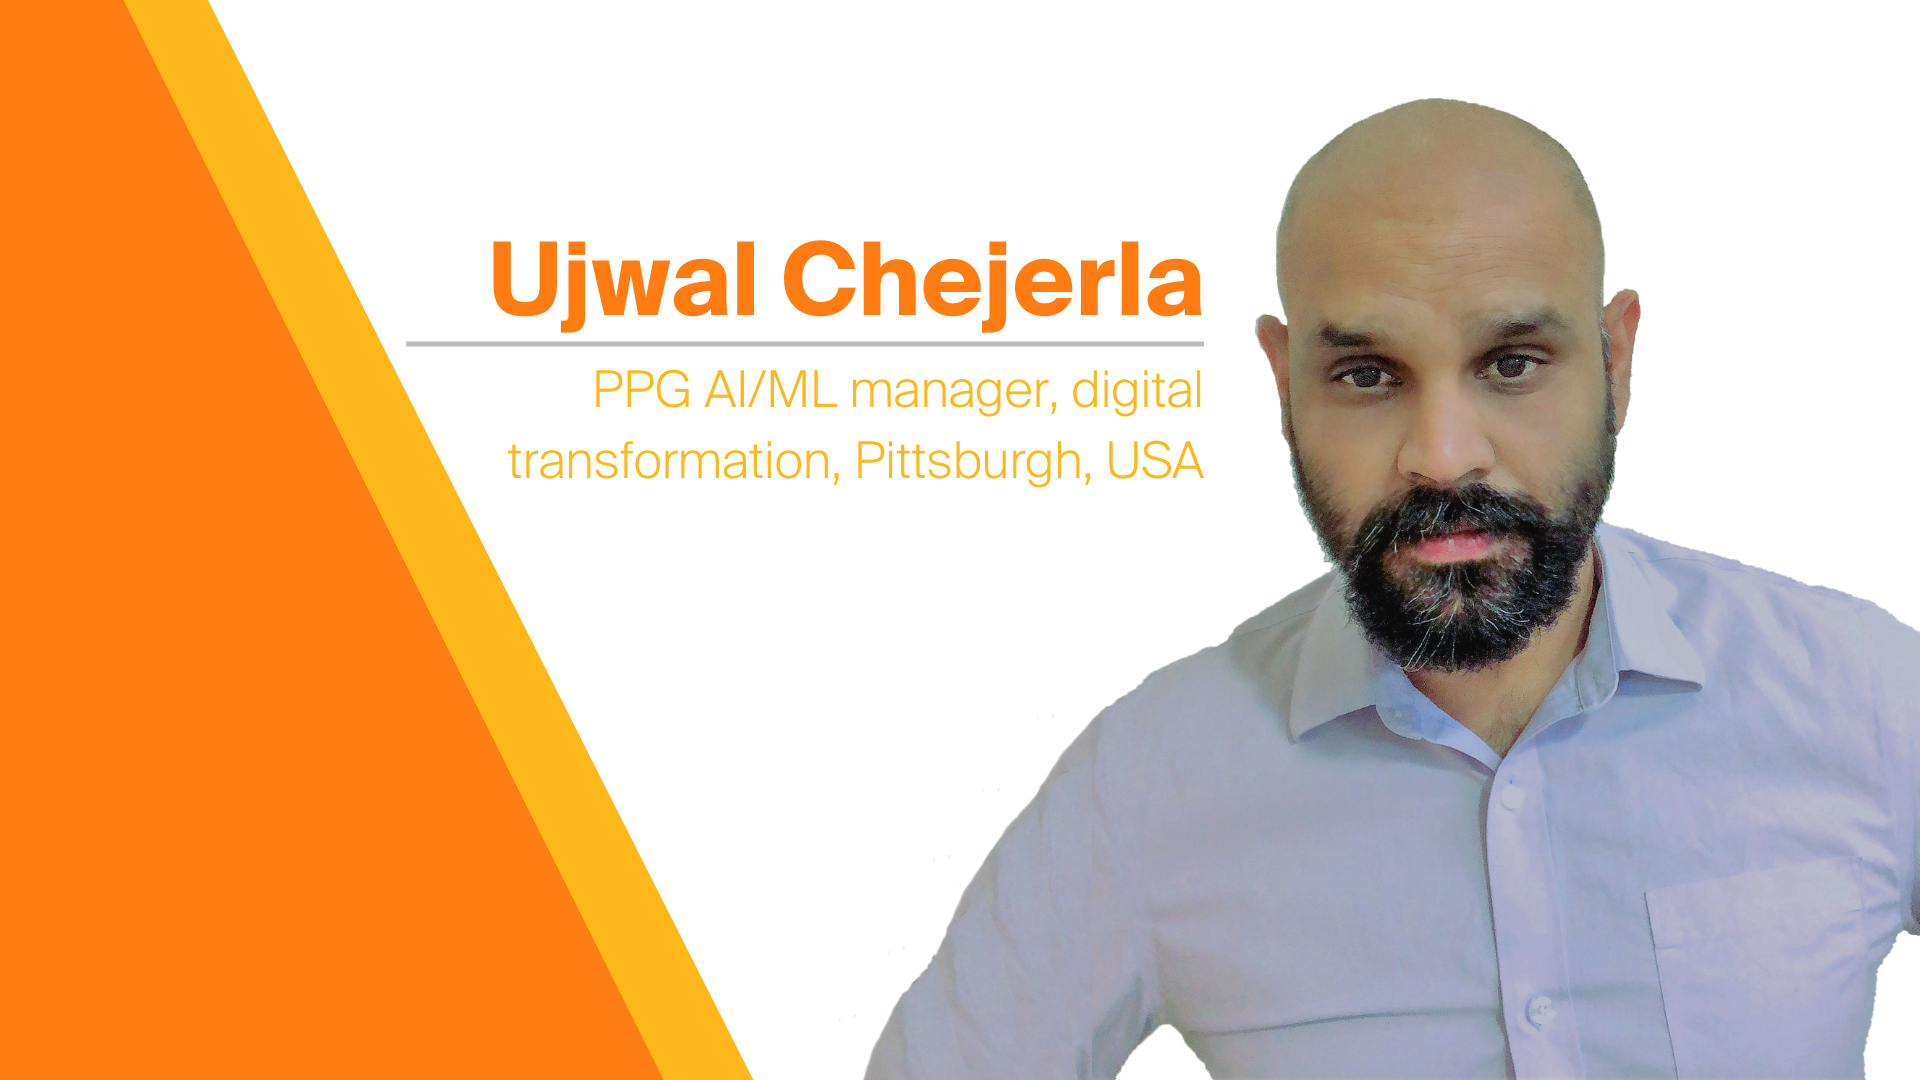 ppg-2021-ujwal-chejerla-digital-transformation-pittsburgh-usa.png